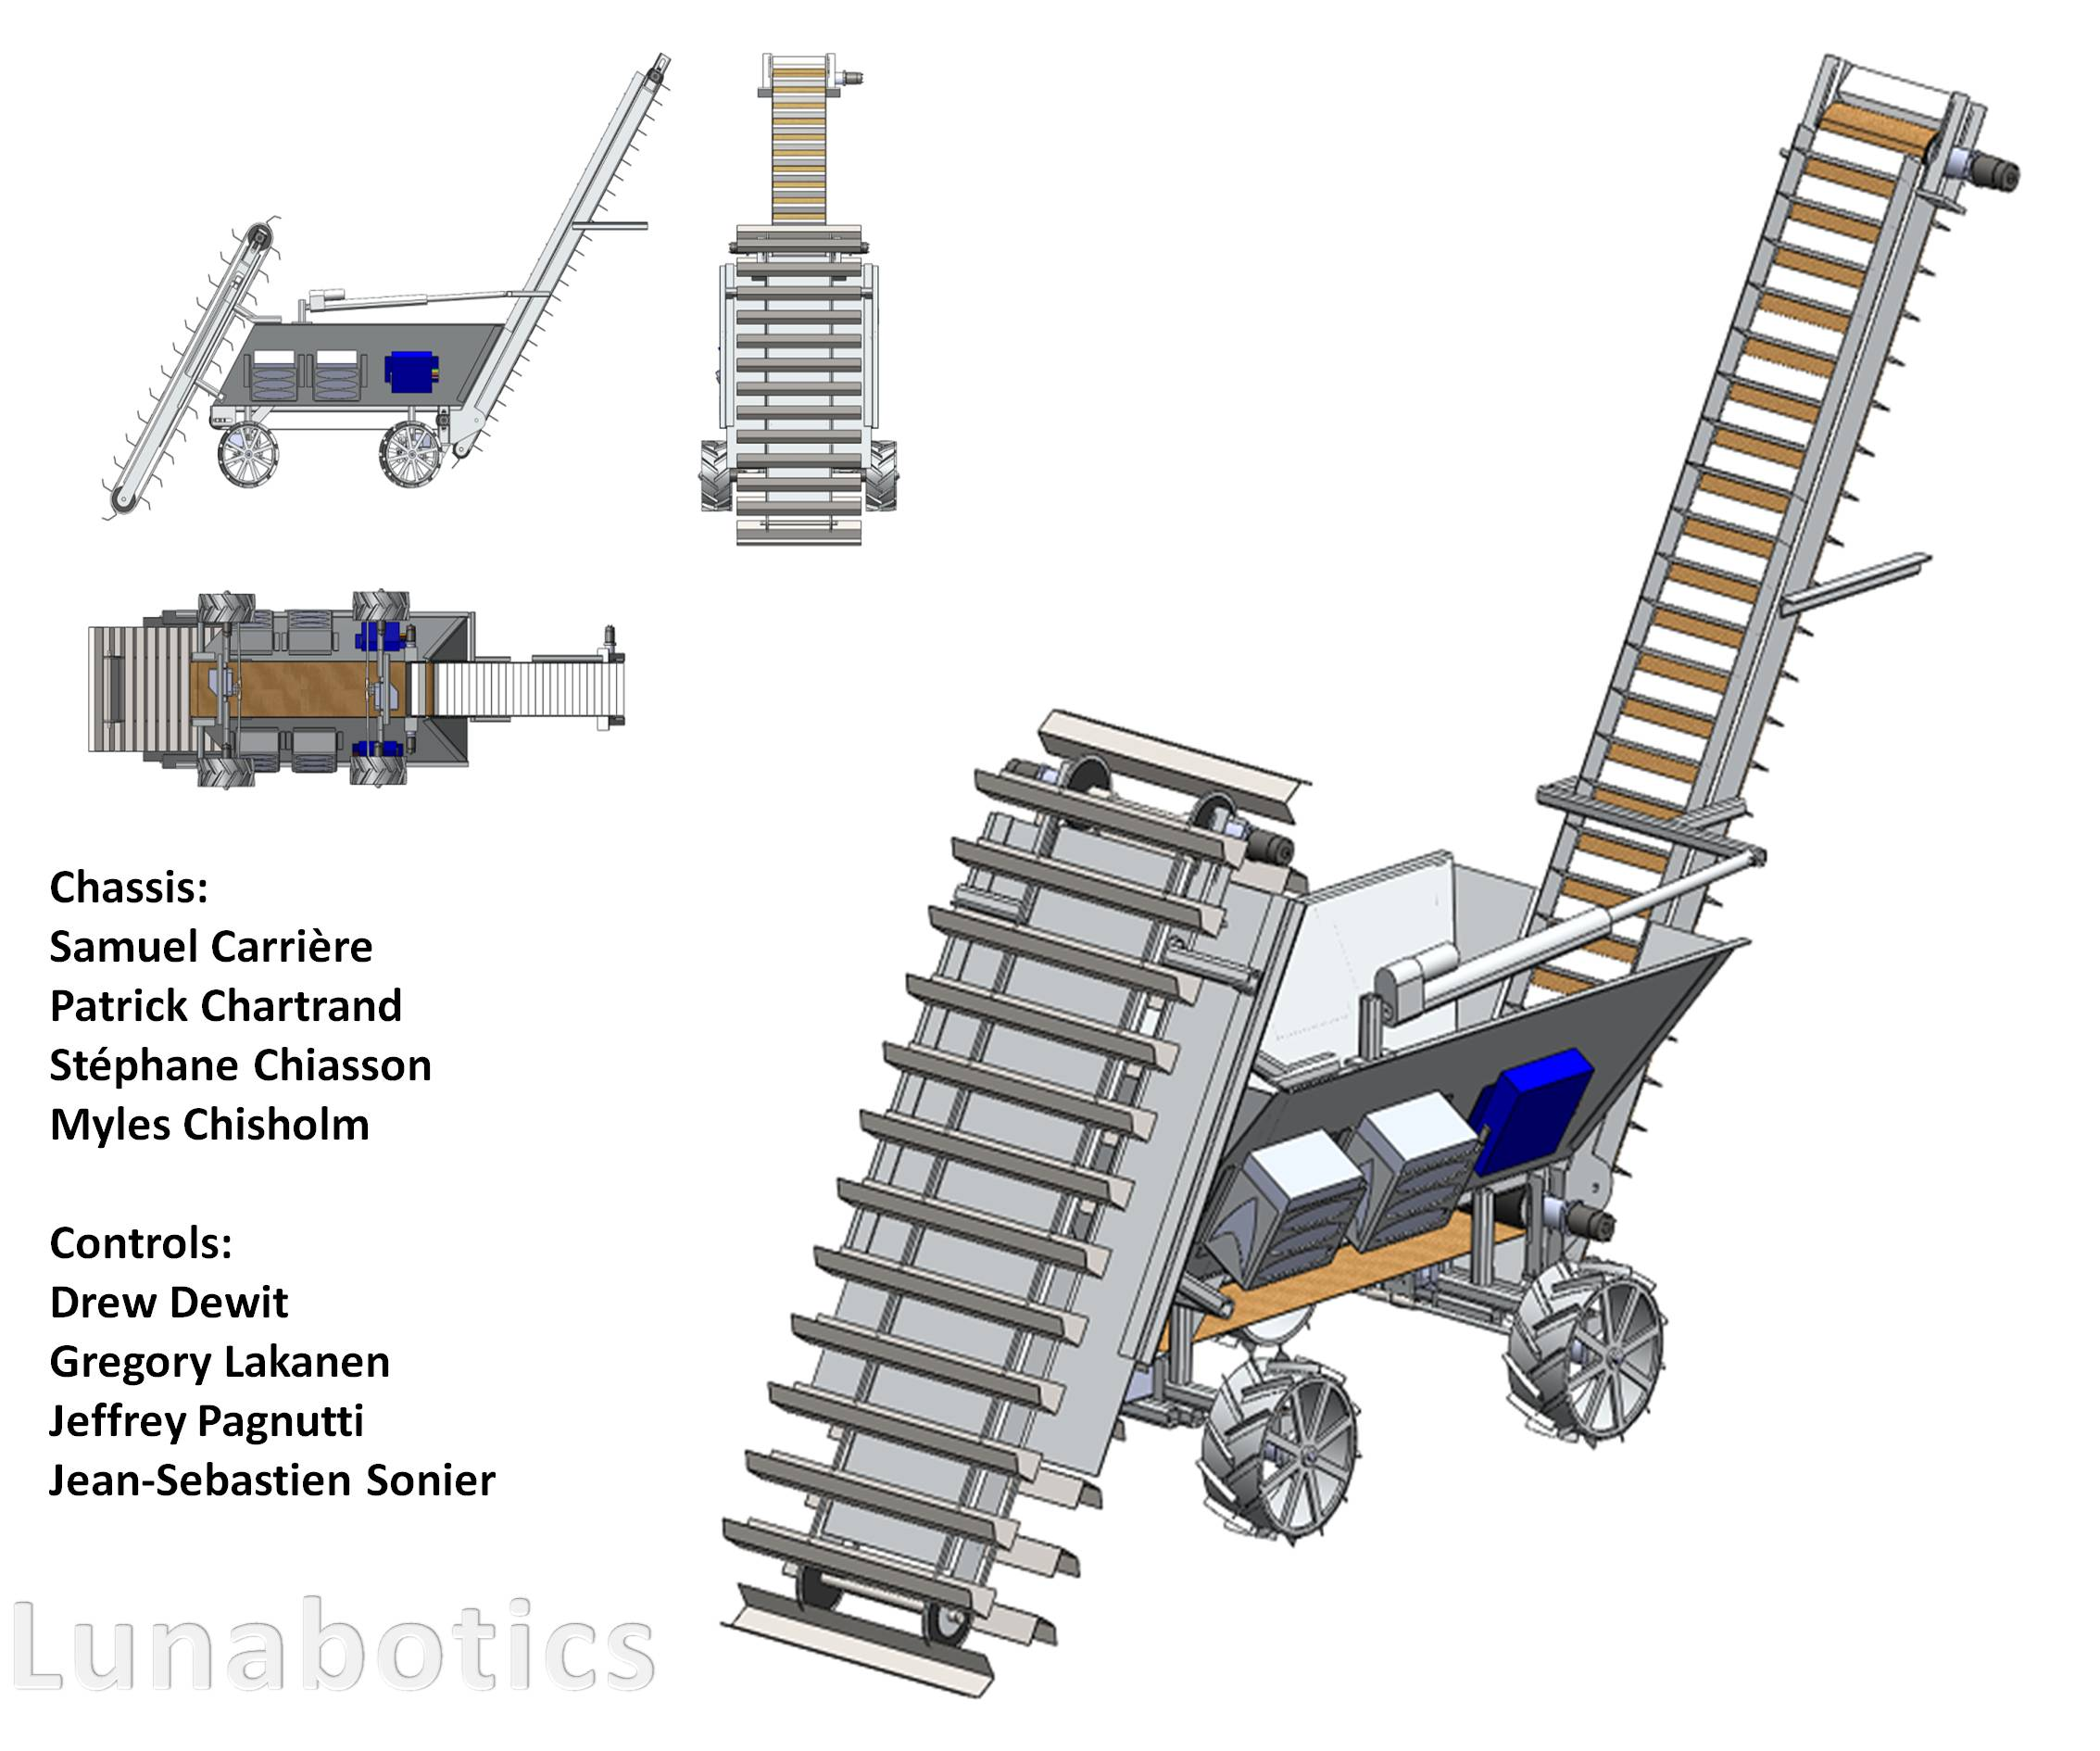 Laurentian University Students win NASA's Lunabotics Competition with SolidWorks